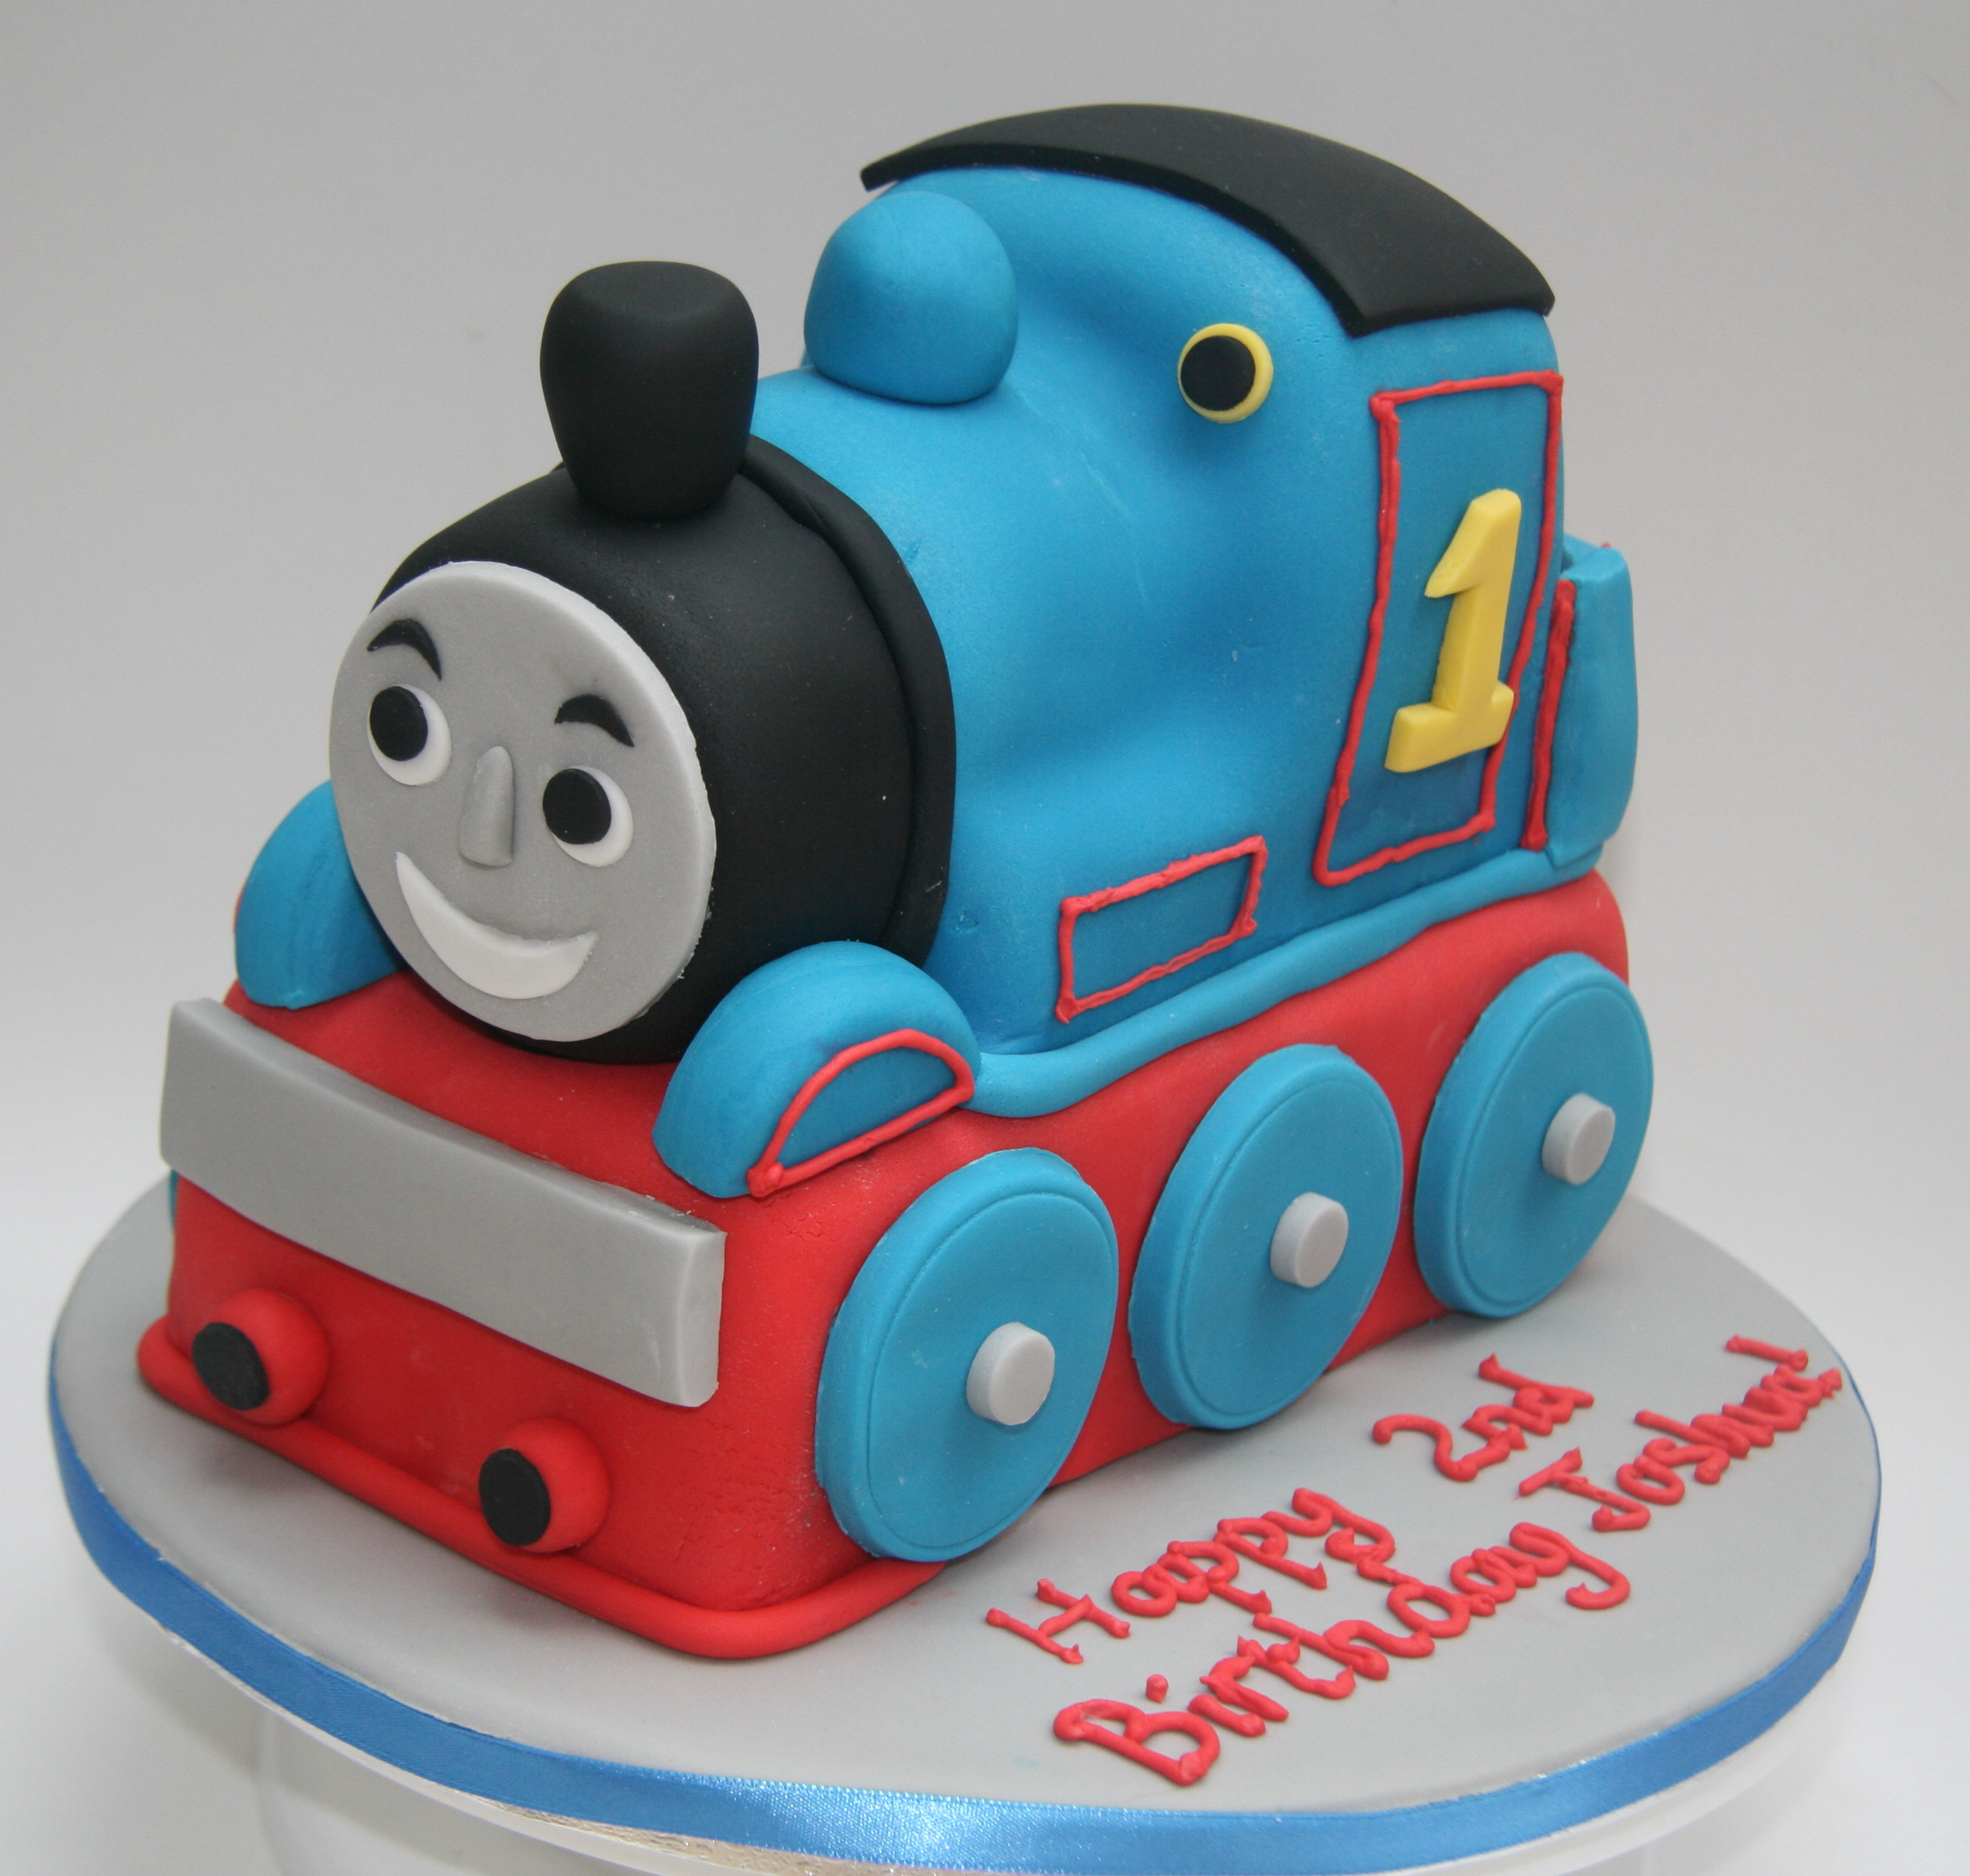 Cake Images Of Thomas The Train : Thomas the Tank Engine Cake Etoile Bakery